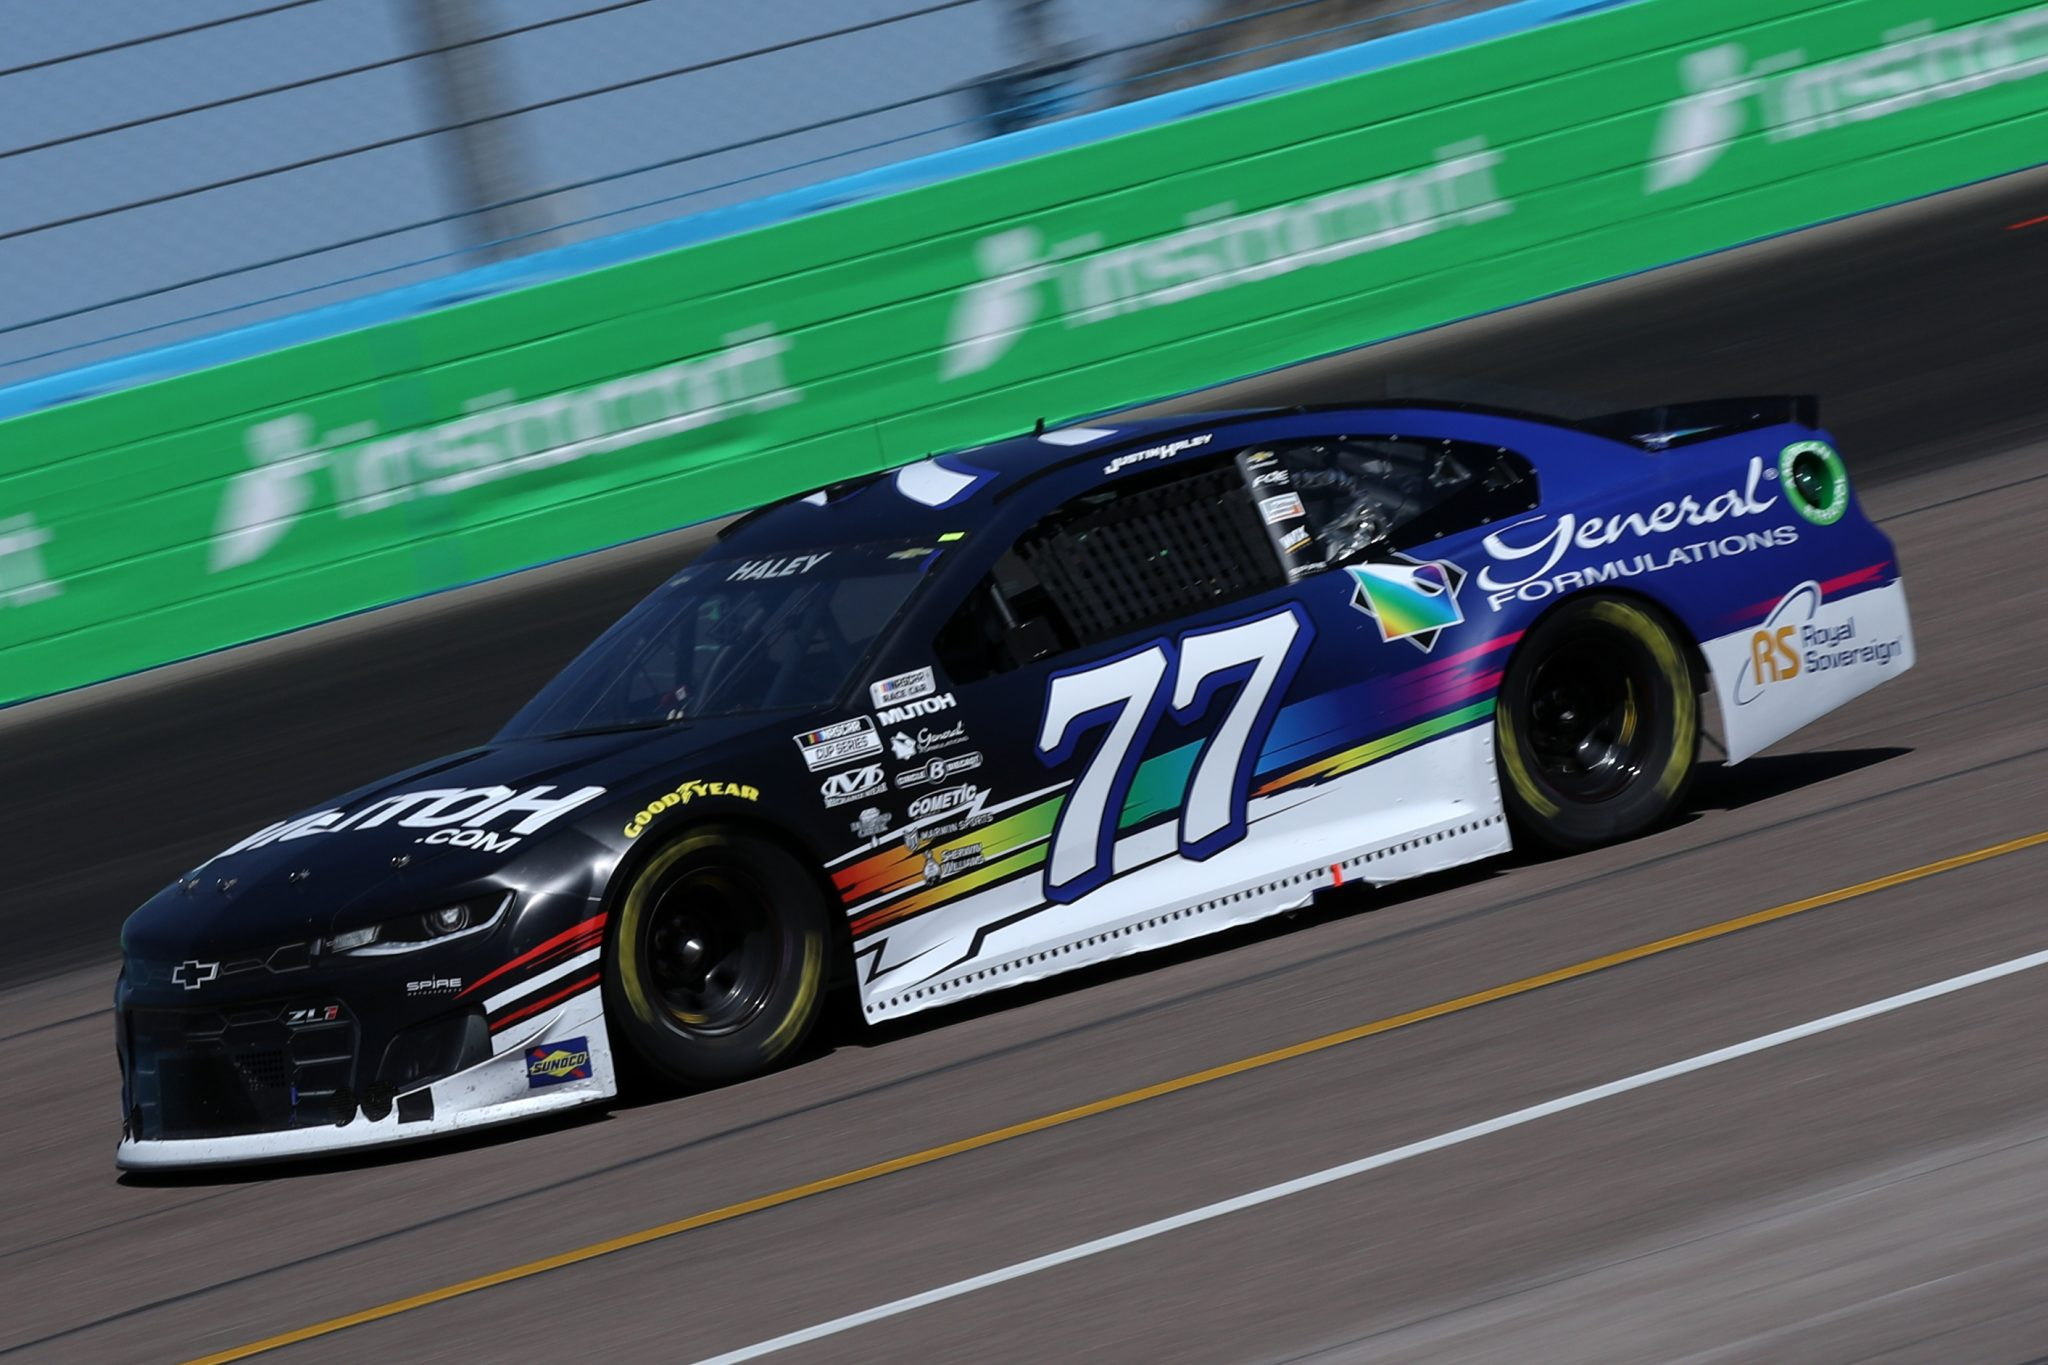 AVONDALE, ARIZONA - MARCH 14: Justin Haley, driver of the #77 Mutoh/General Formulations Chevrolet, drives during the NASCAR Cup Series Instacart 500 at Phoenix Raceway on March 14, 2021 in Avondale, Arizona. (Photo by Sean Gardner/Getty Images) | Getty Images